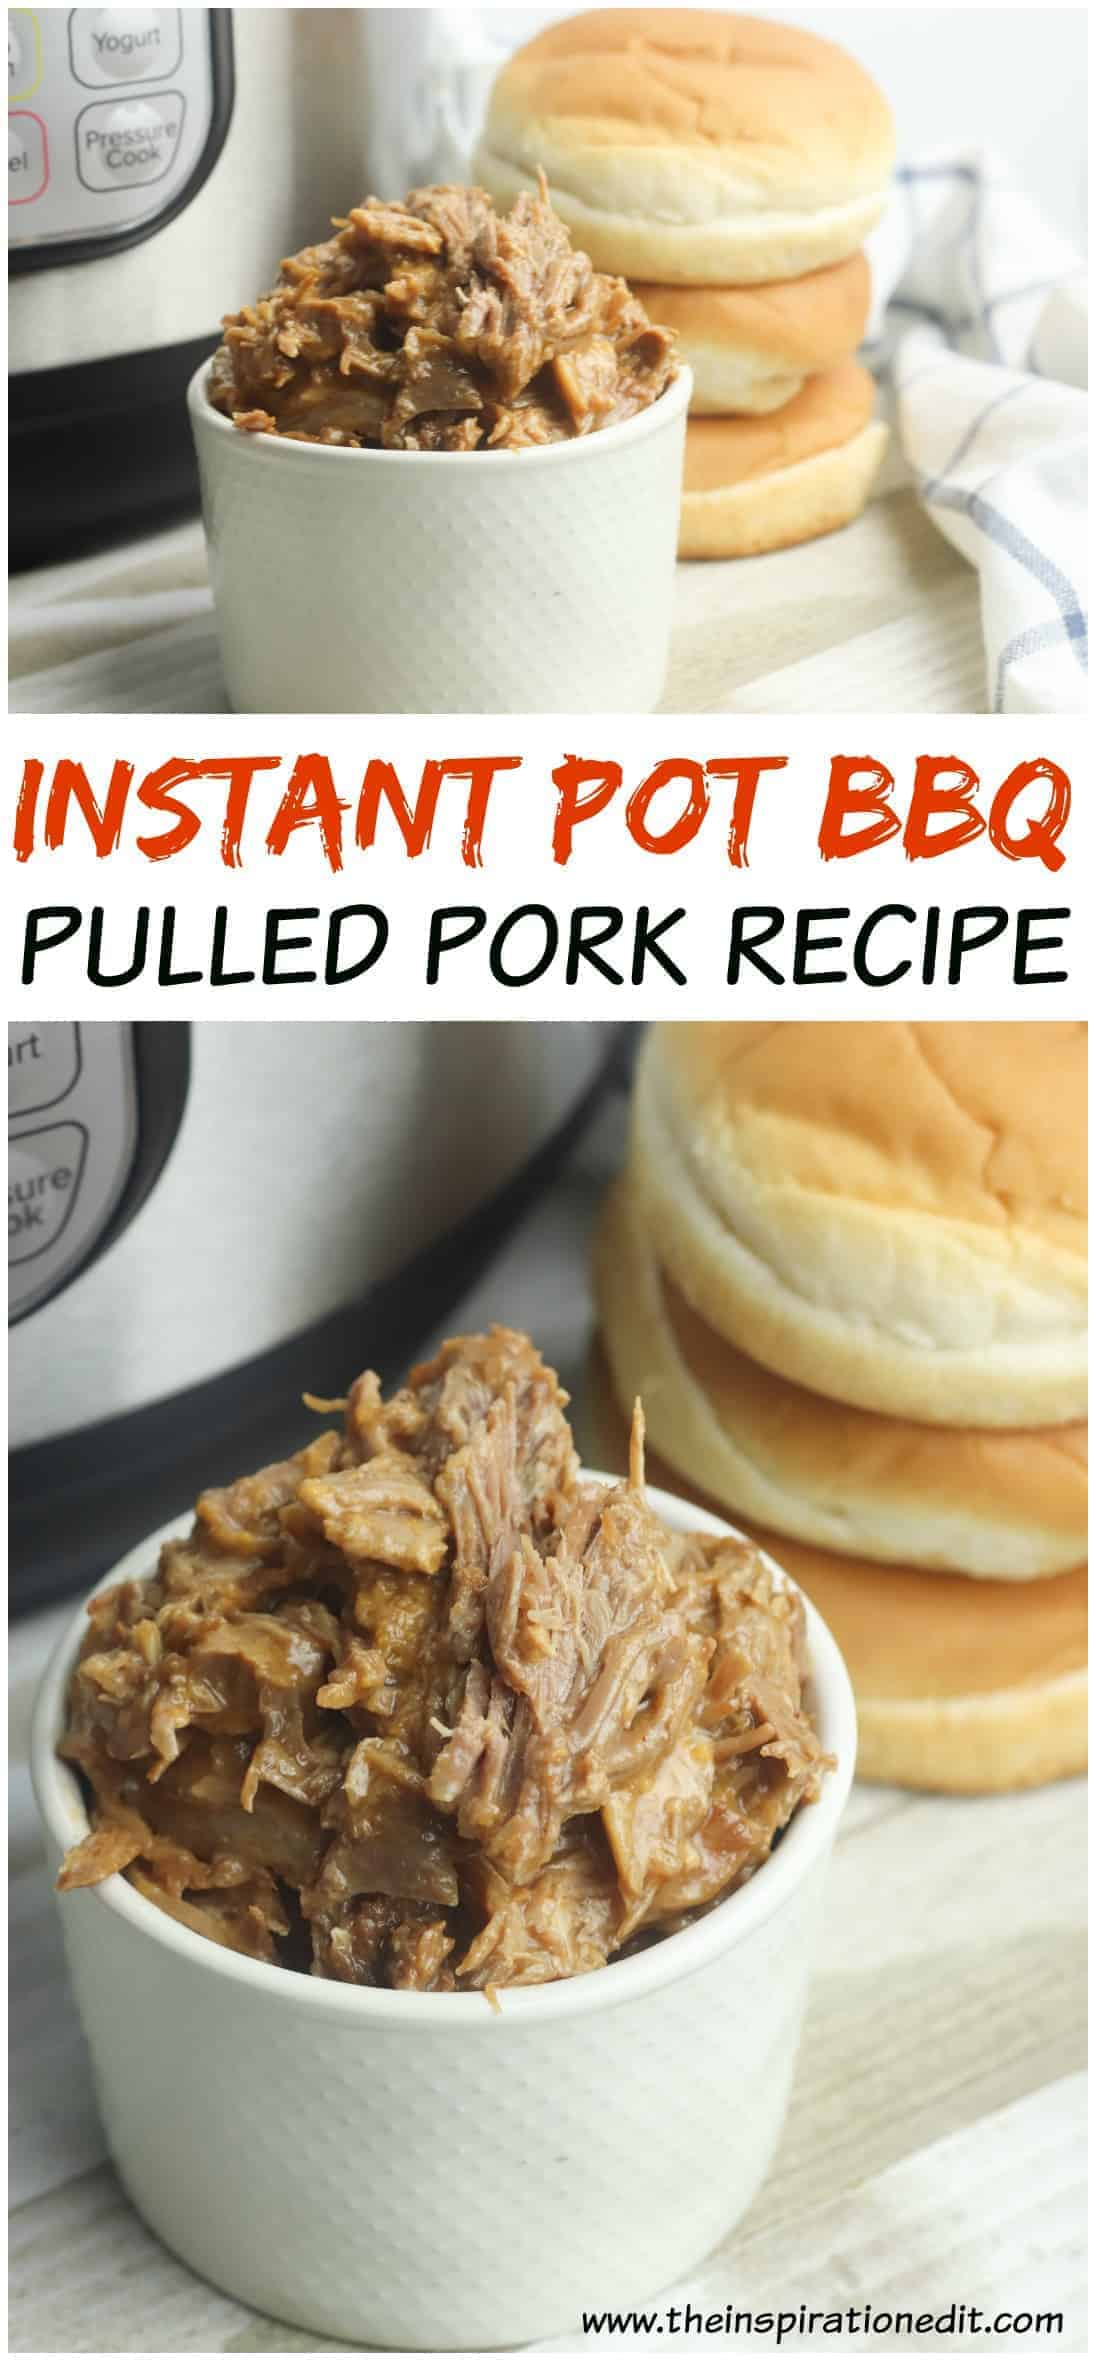 Grab this delicious and mouth watering Instant Pot BBQ Pulled Pork recipe!